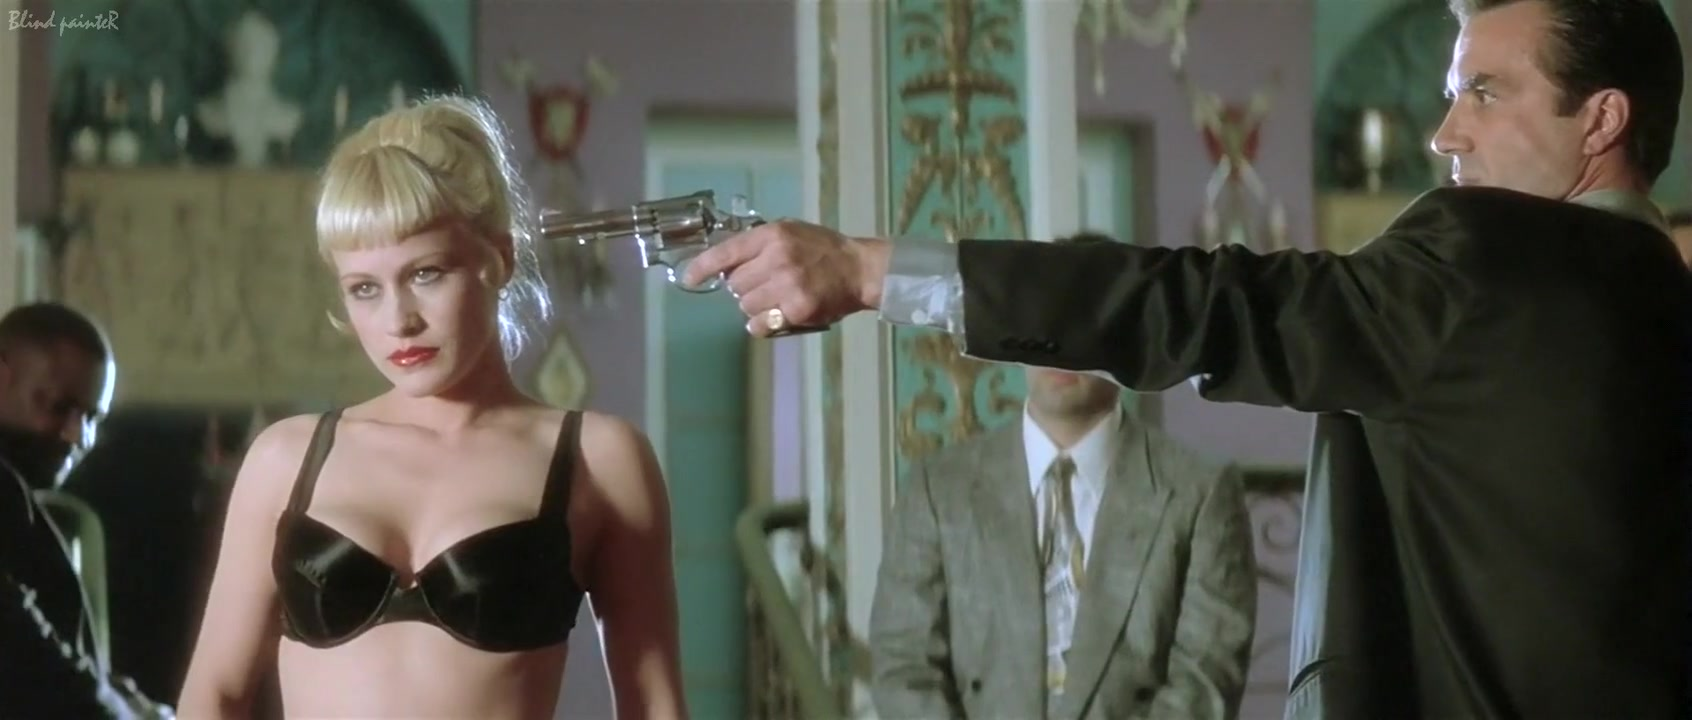 Lost Highway (1997) Patricia Arquette hot blonde amateur ass